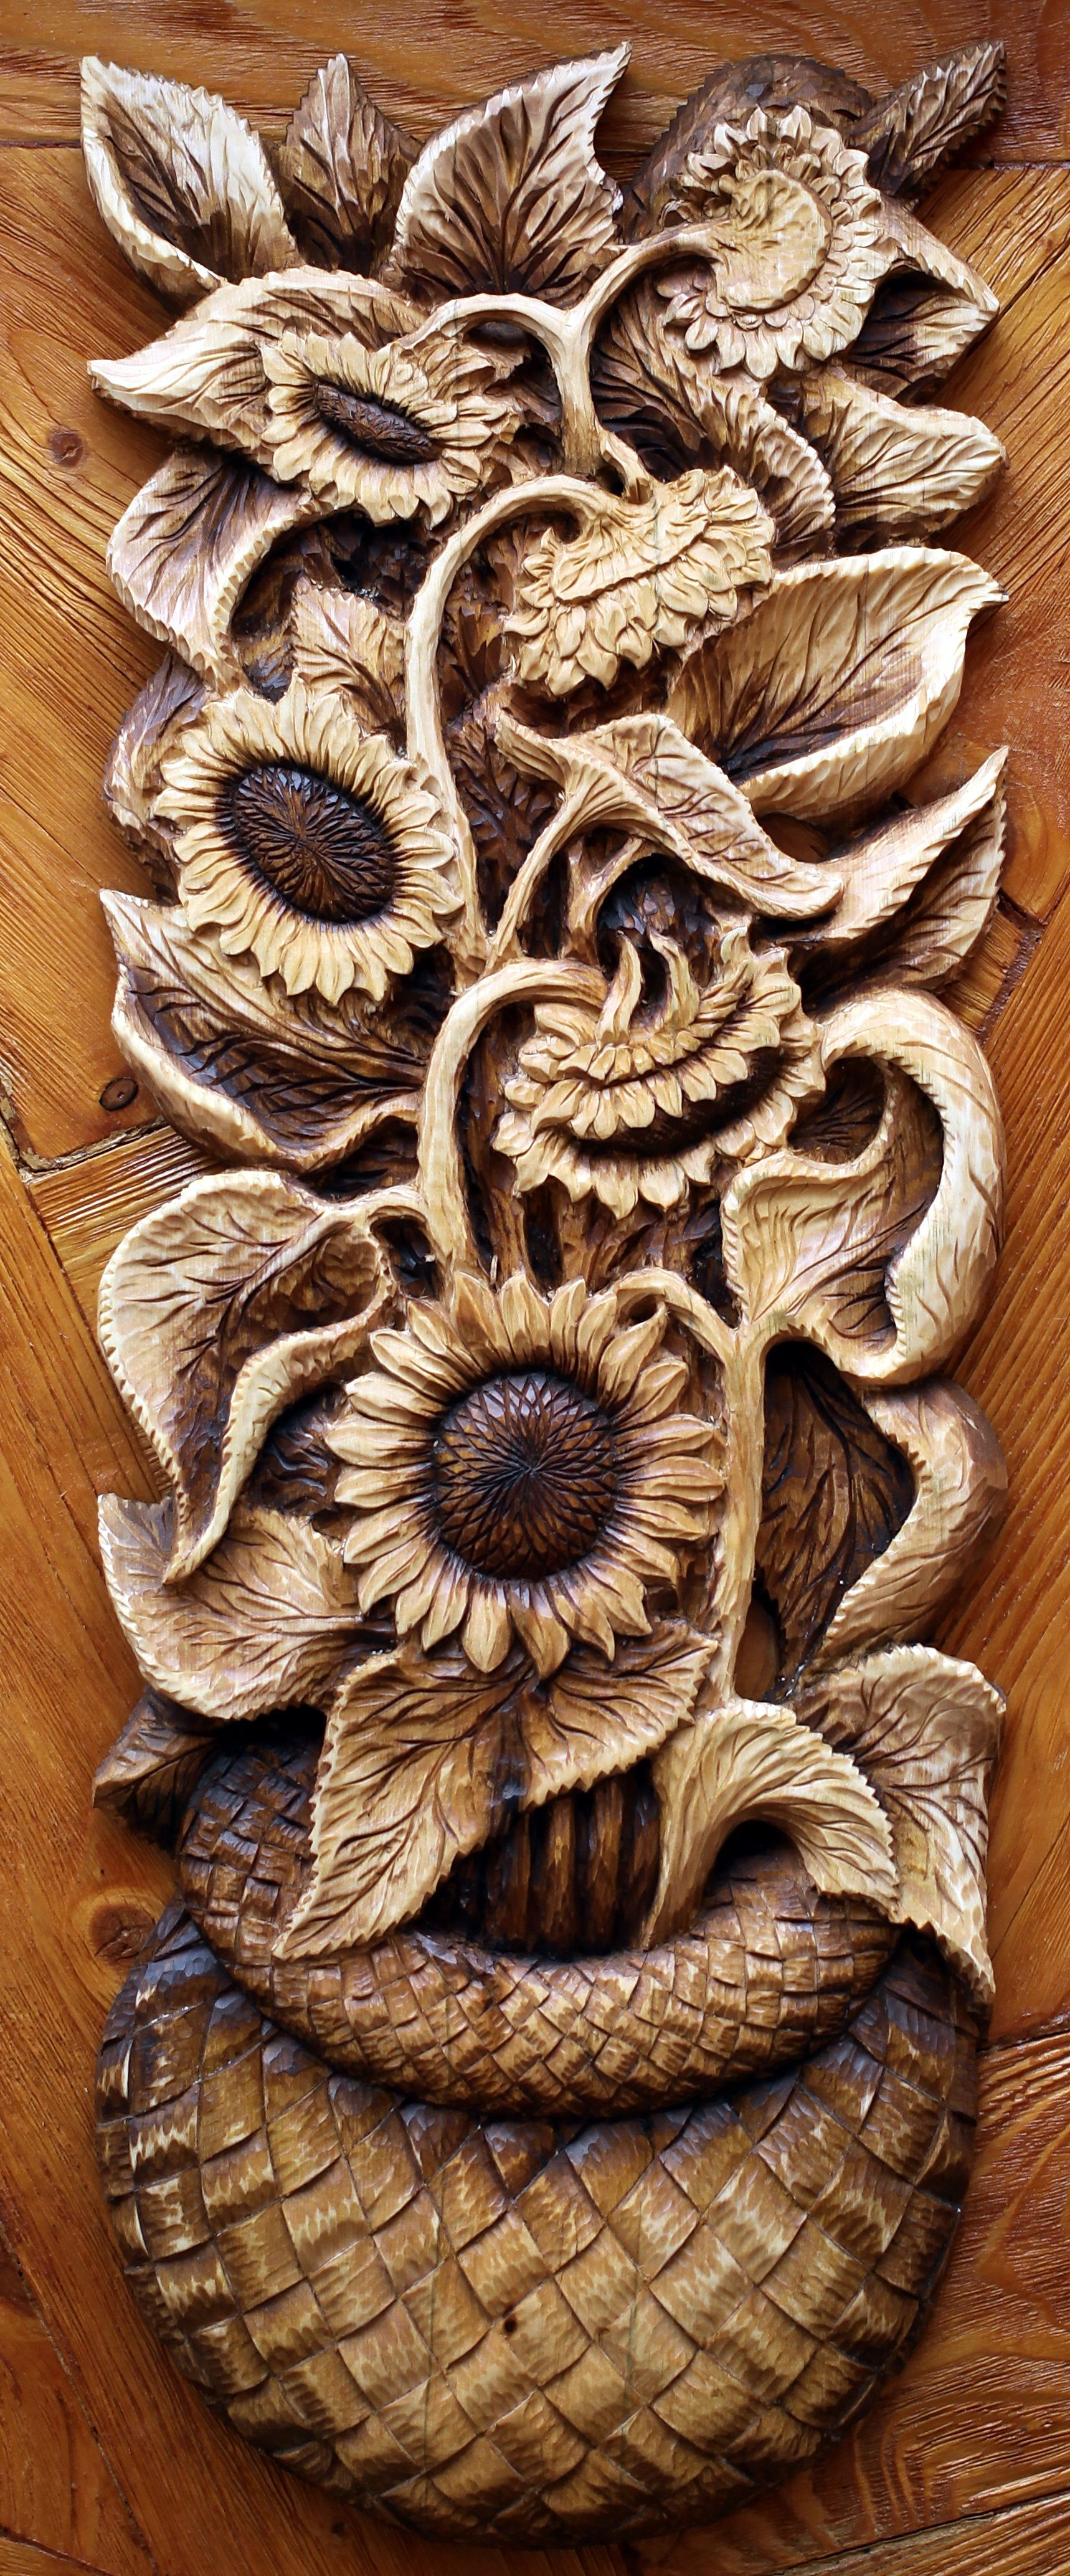 Carved Sunflowers In A Basket Wood Arts Products